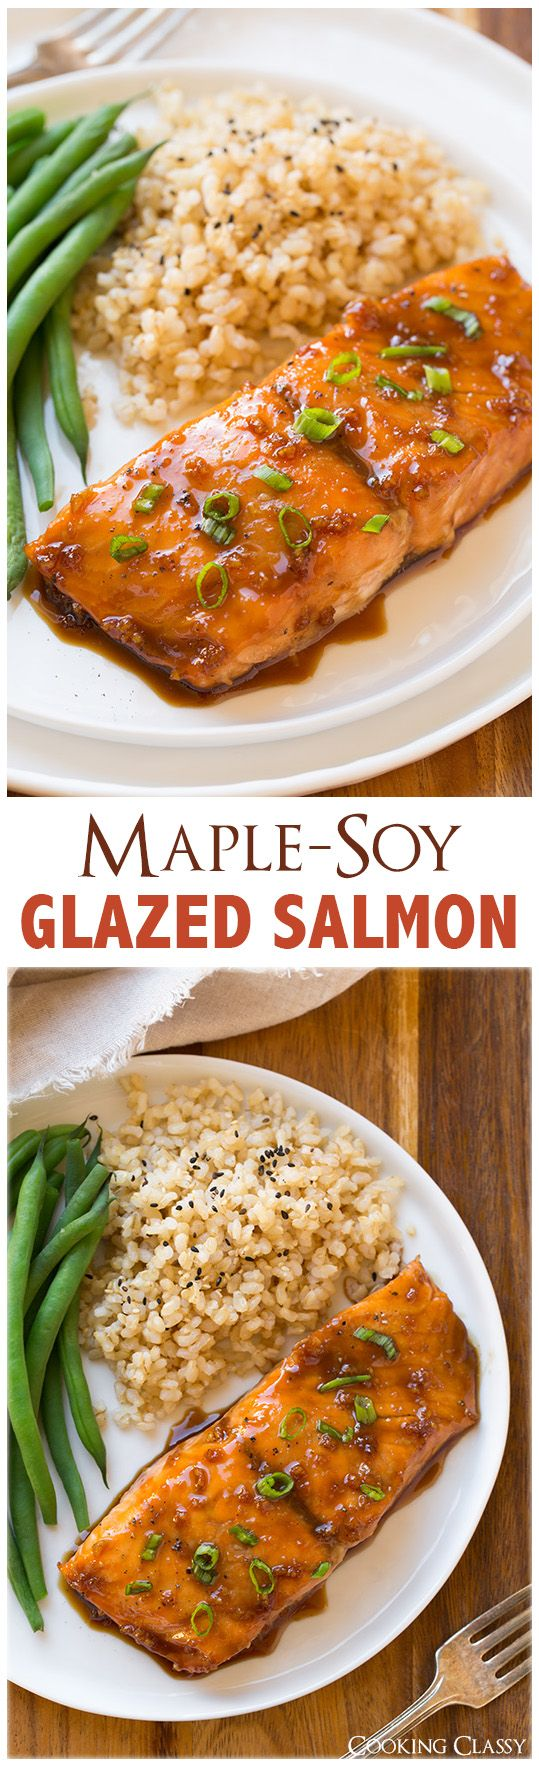 Maple-Soy Glazed Salmon - only FOUR ingredients and it tastes seriously DELICIOUS!!  | fish, seafood, dinner ideas, recipes